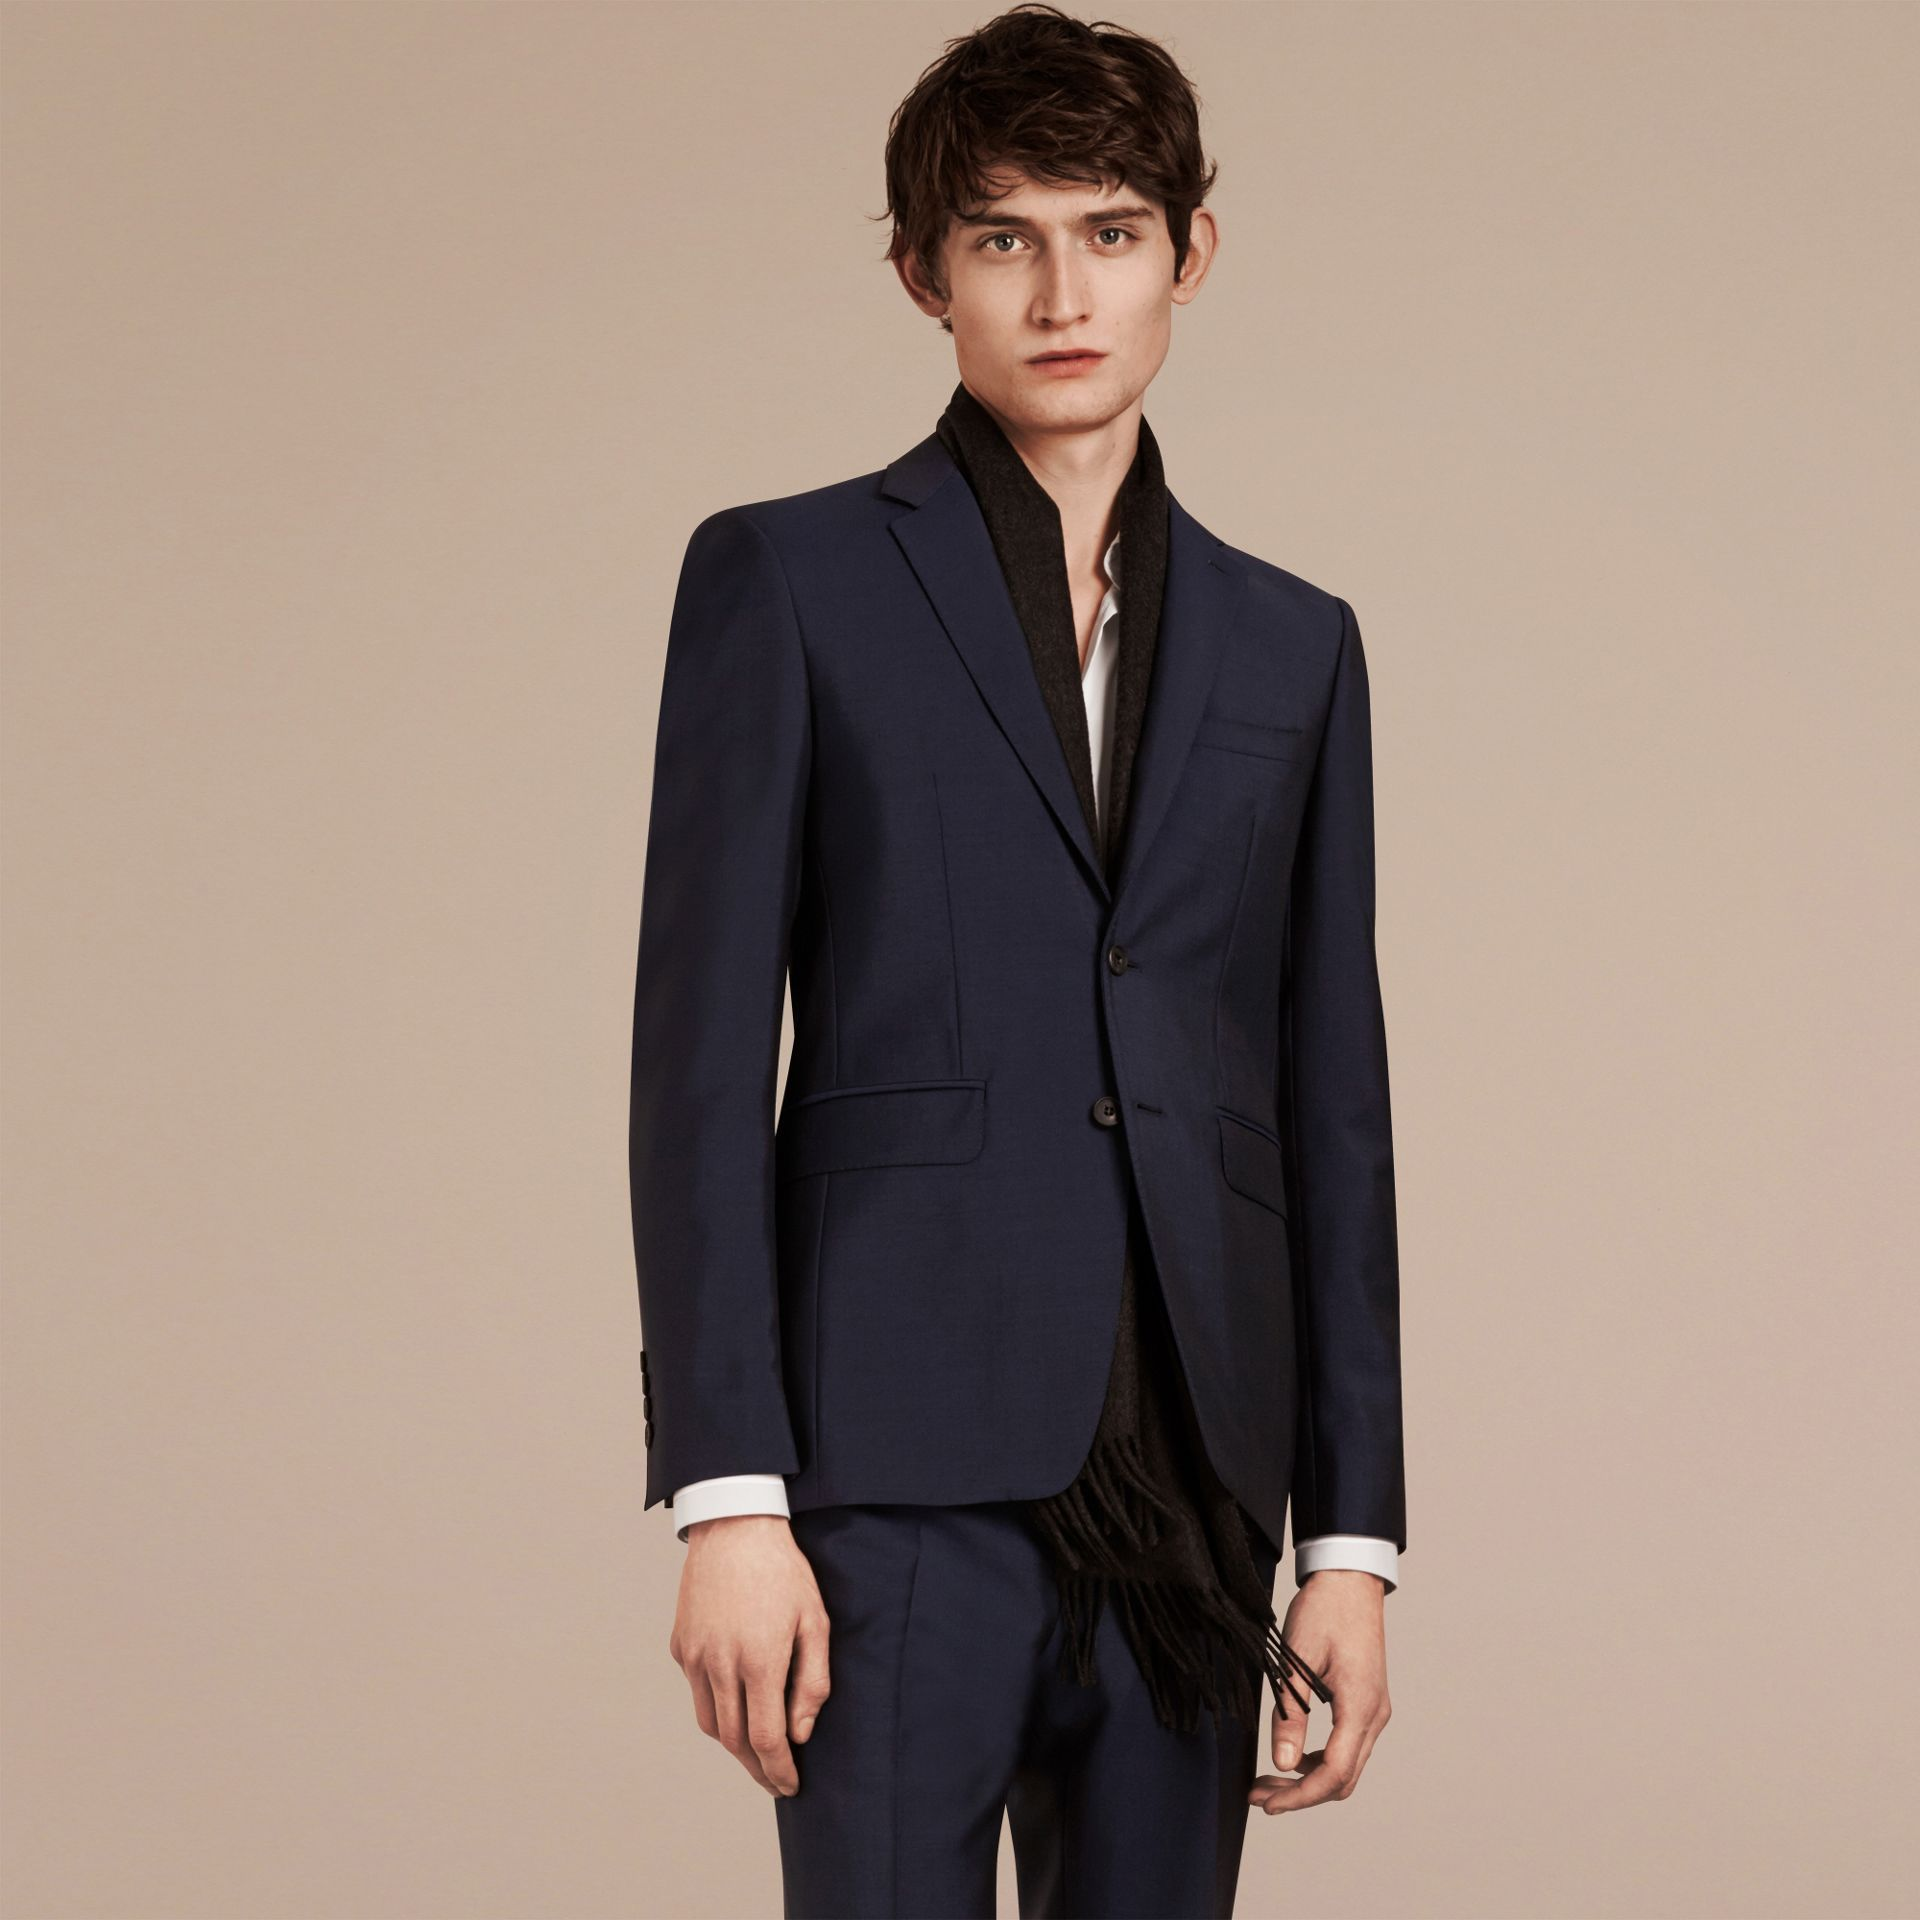 Slim Fit Wool Mohair Part-canvas Suit in Royal Navy - Men | Burberry Canada - gallery image 3